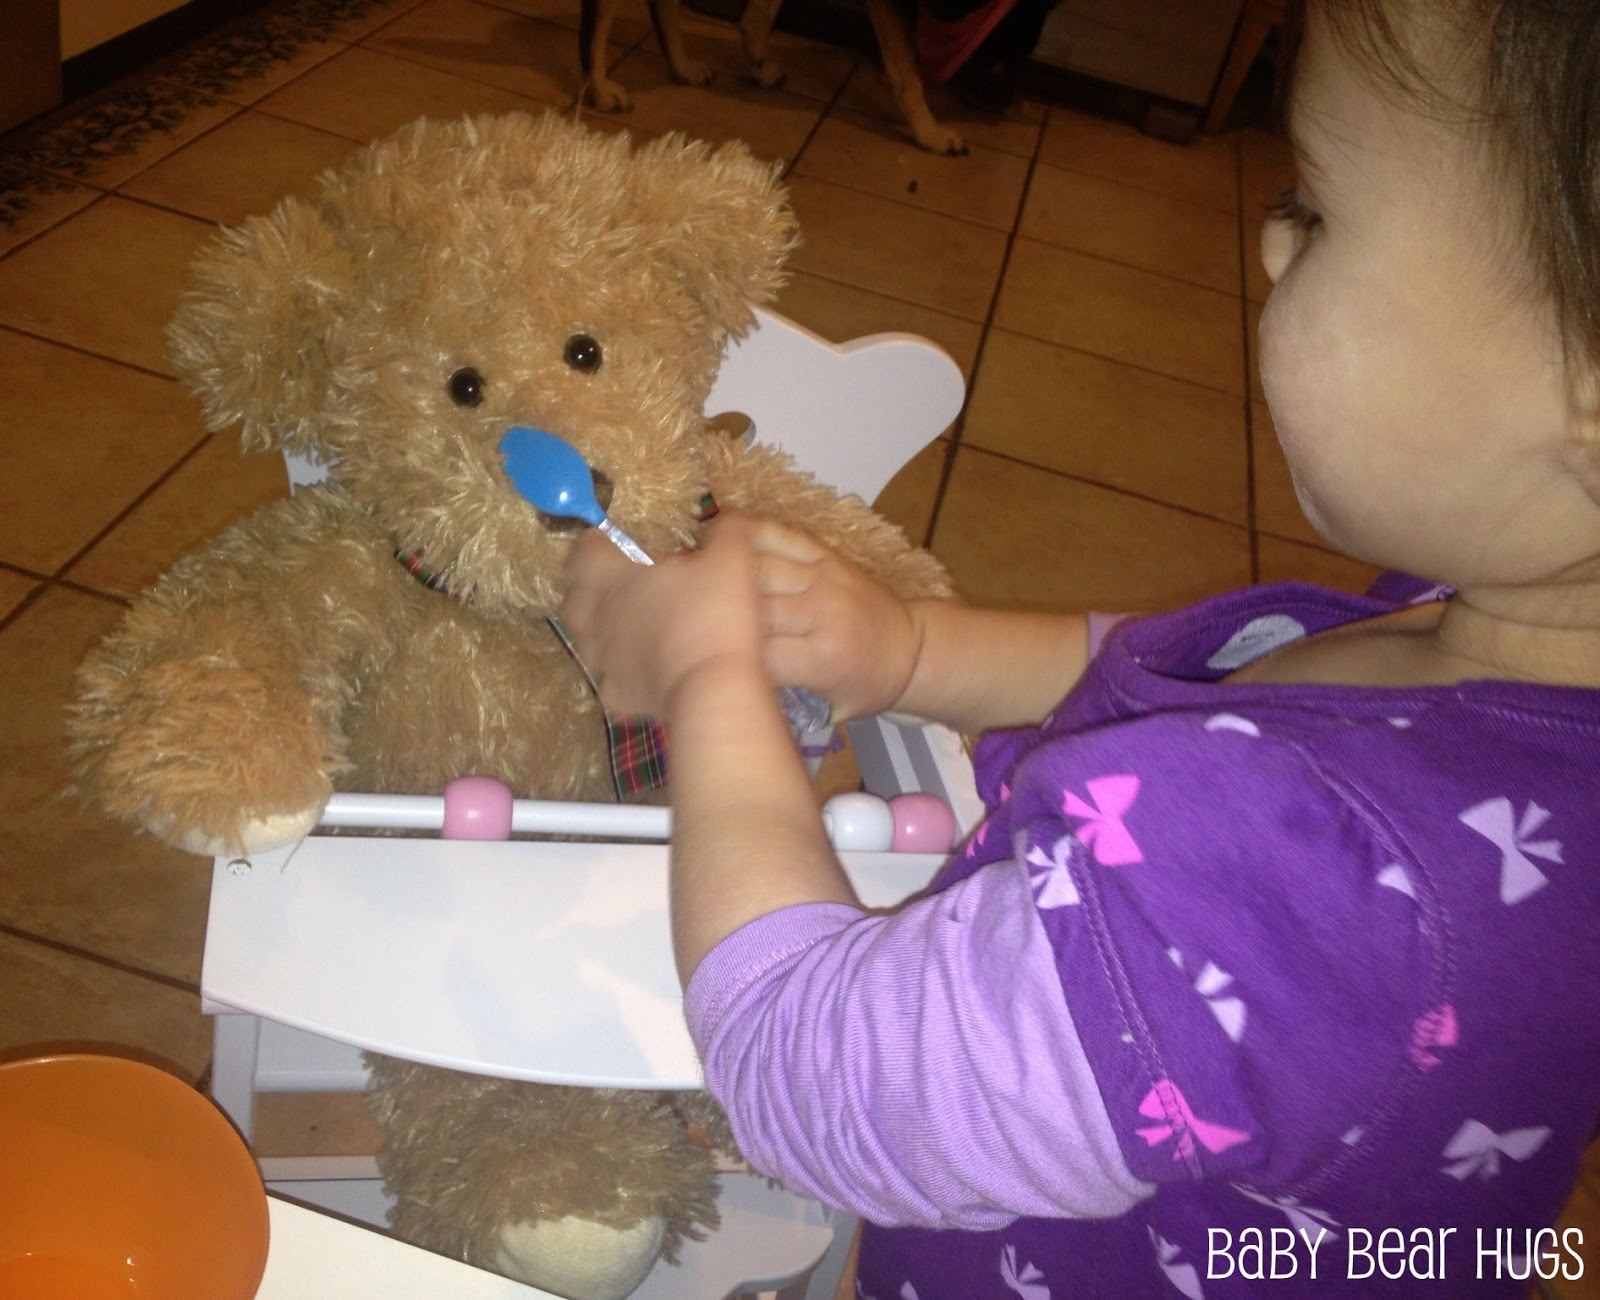 kidkraft doll high chair dining room covers diy baby bear hugs great holiday gift lil 39